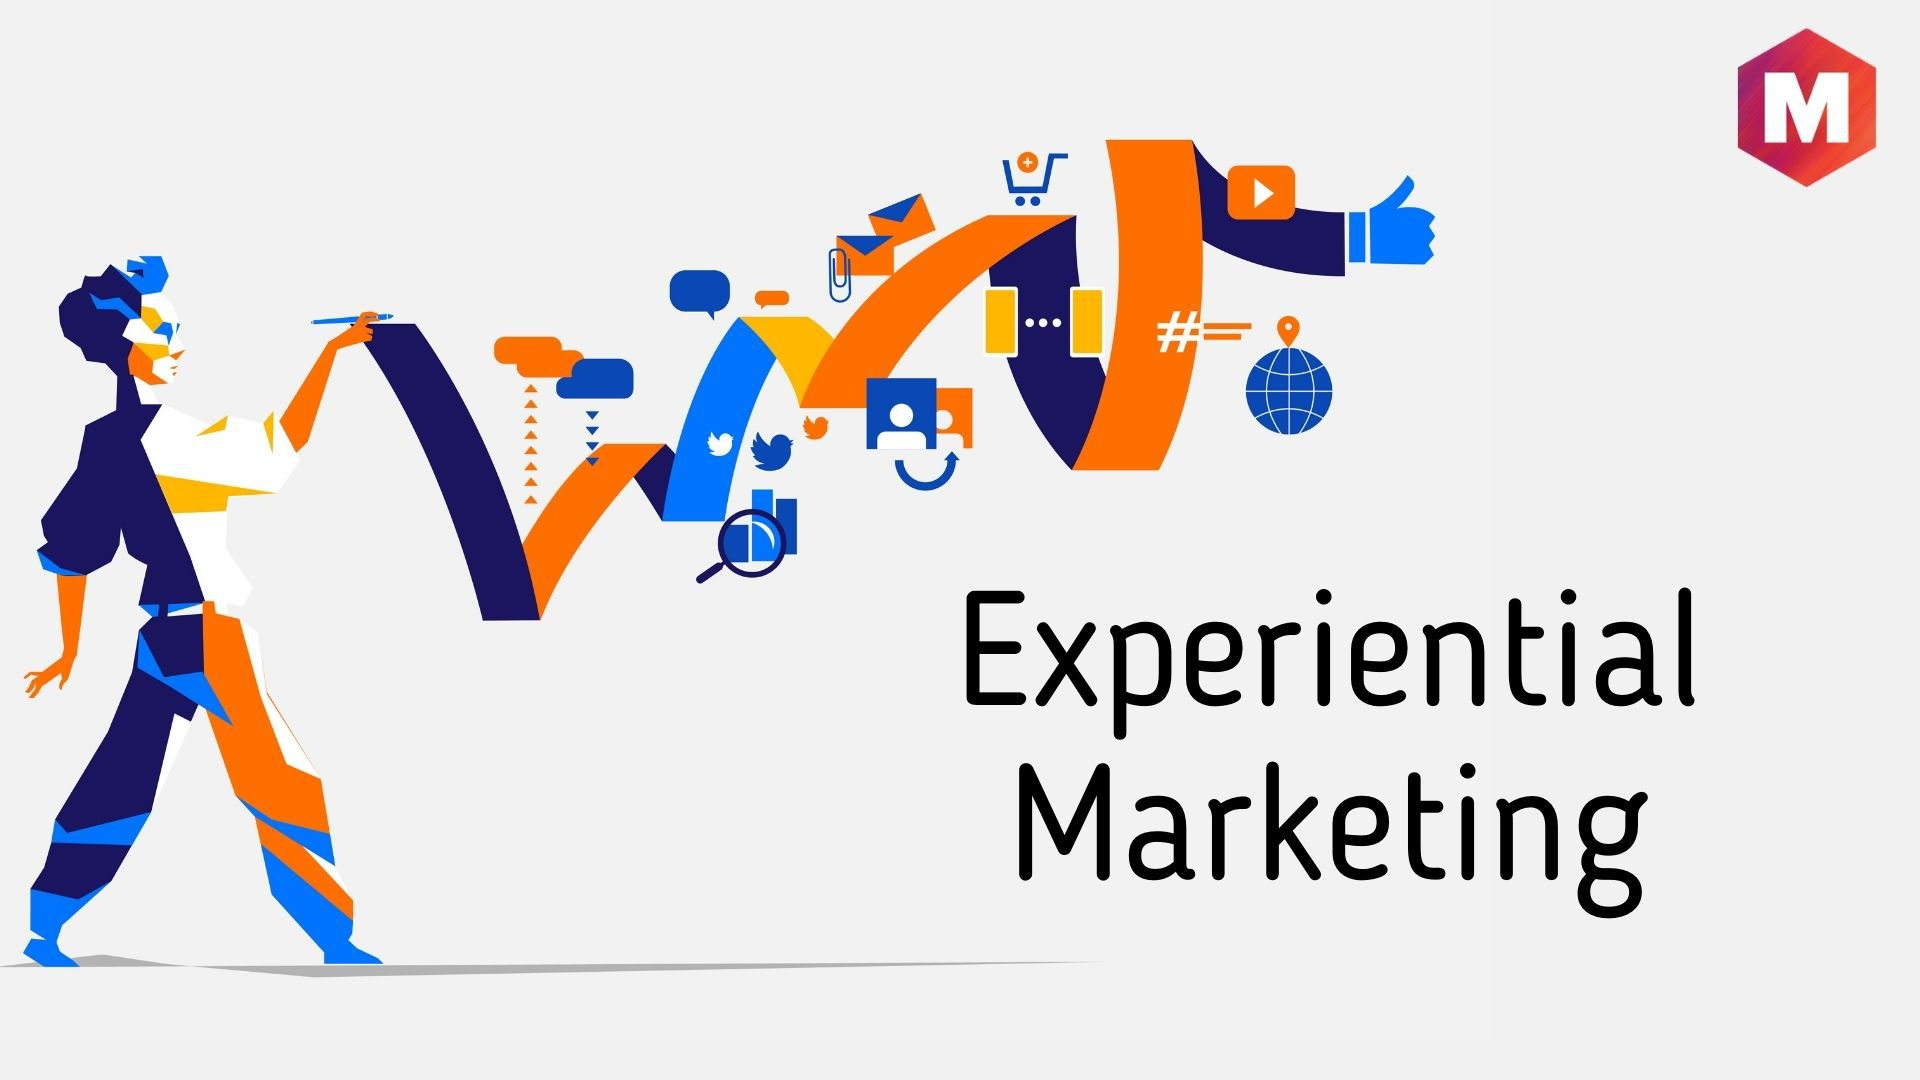 Information about experiential marketing and its work